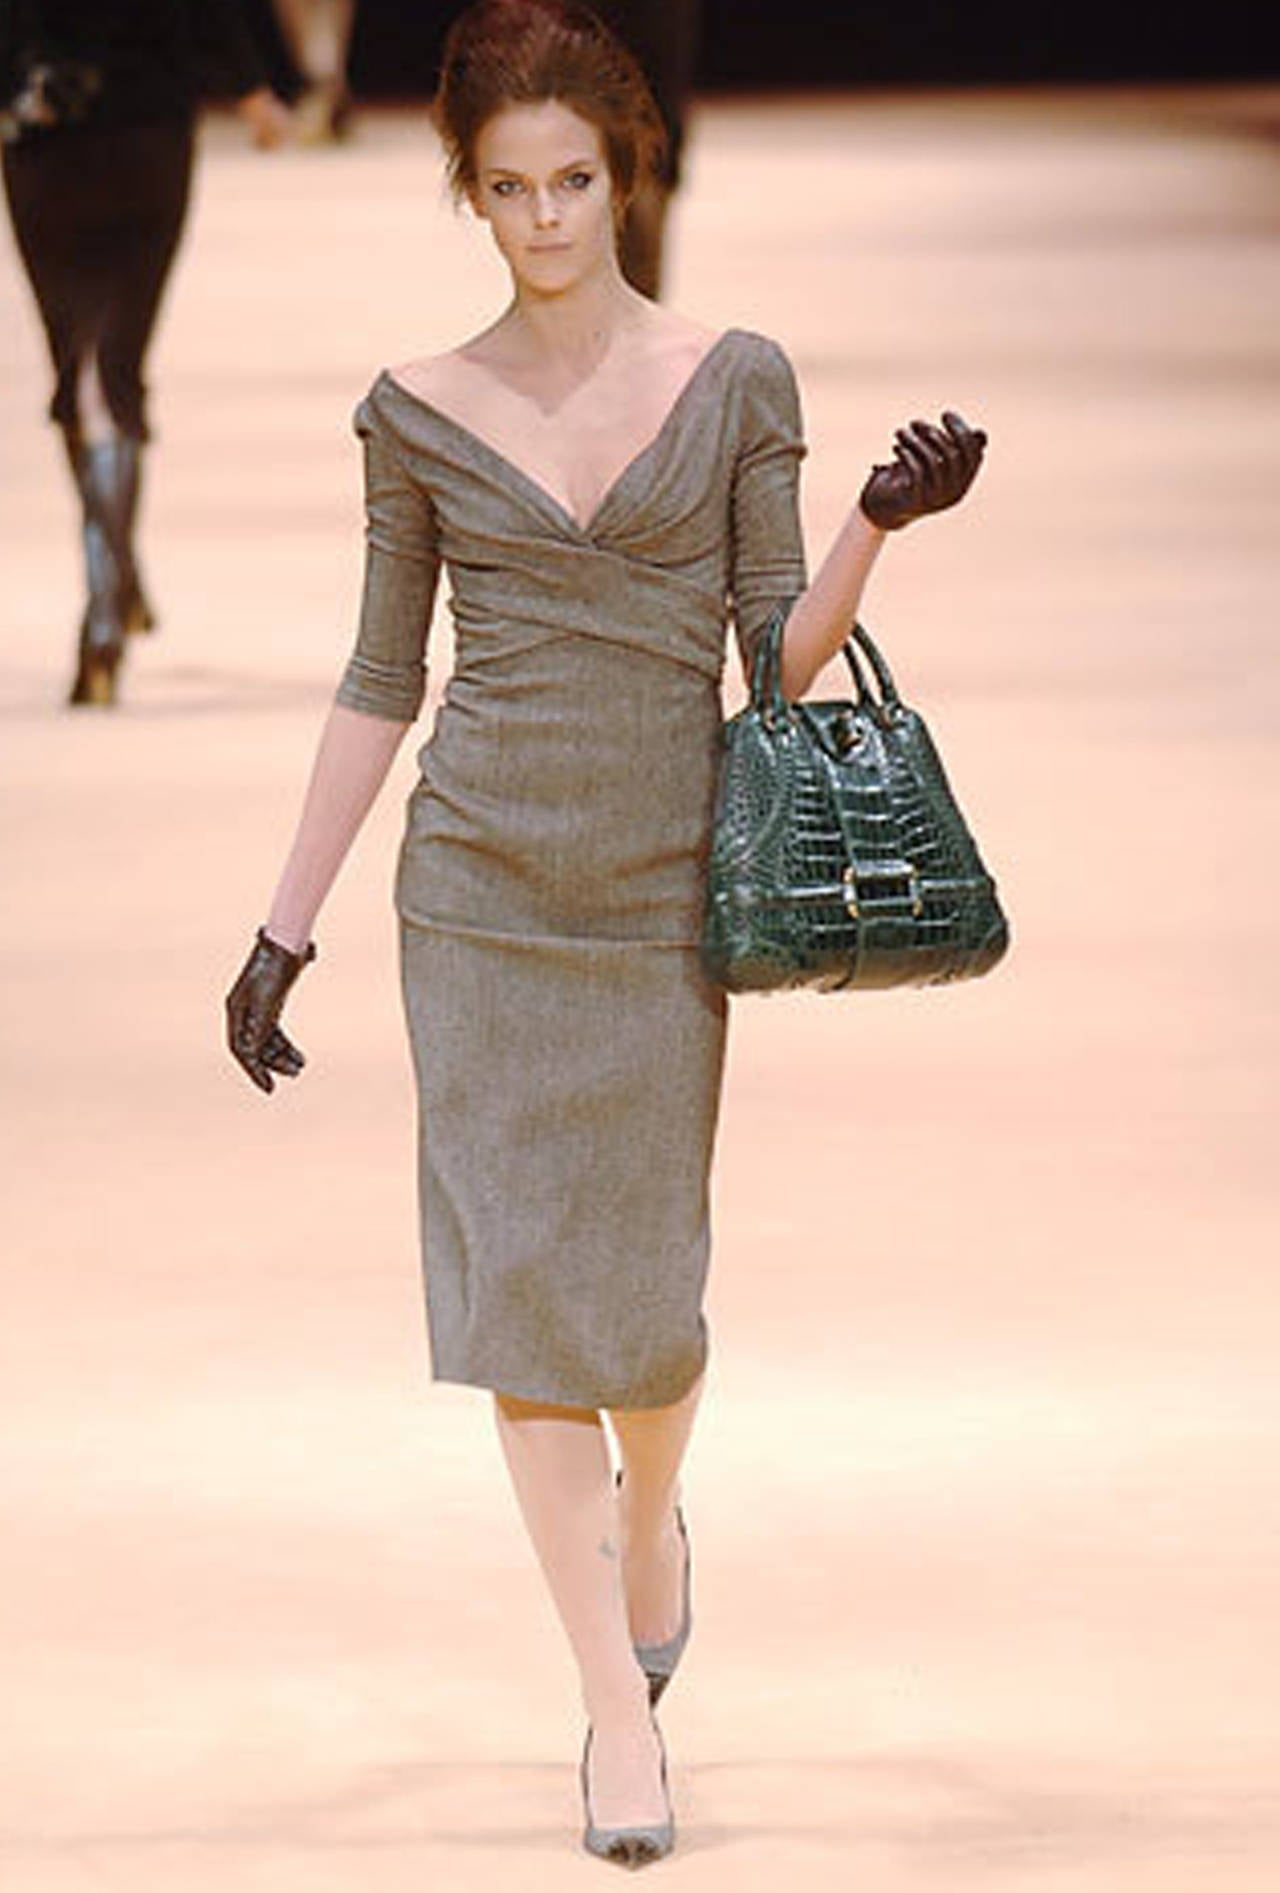 Women's Alexander McQueen Runway Pin-up 50s inspired dress (Autumn/Winter 2005) For Sale